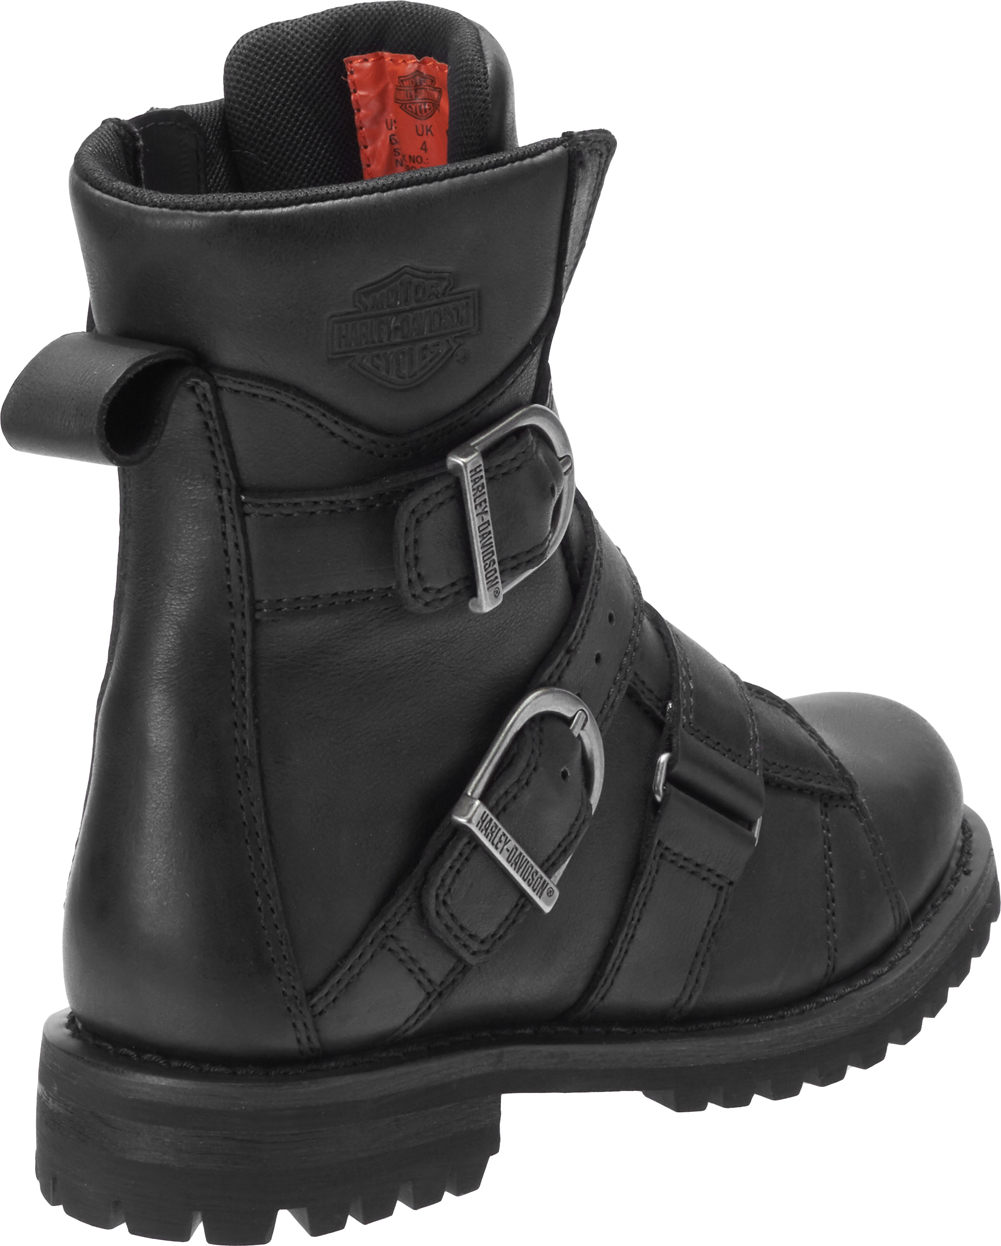 Harley-Davidson-Women-039-s-Hemford-6-75-Inch-Black-or-Brown-Motorcycle-Boots-D84470 thumbnail 7